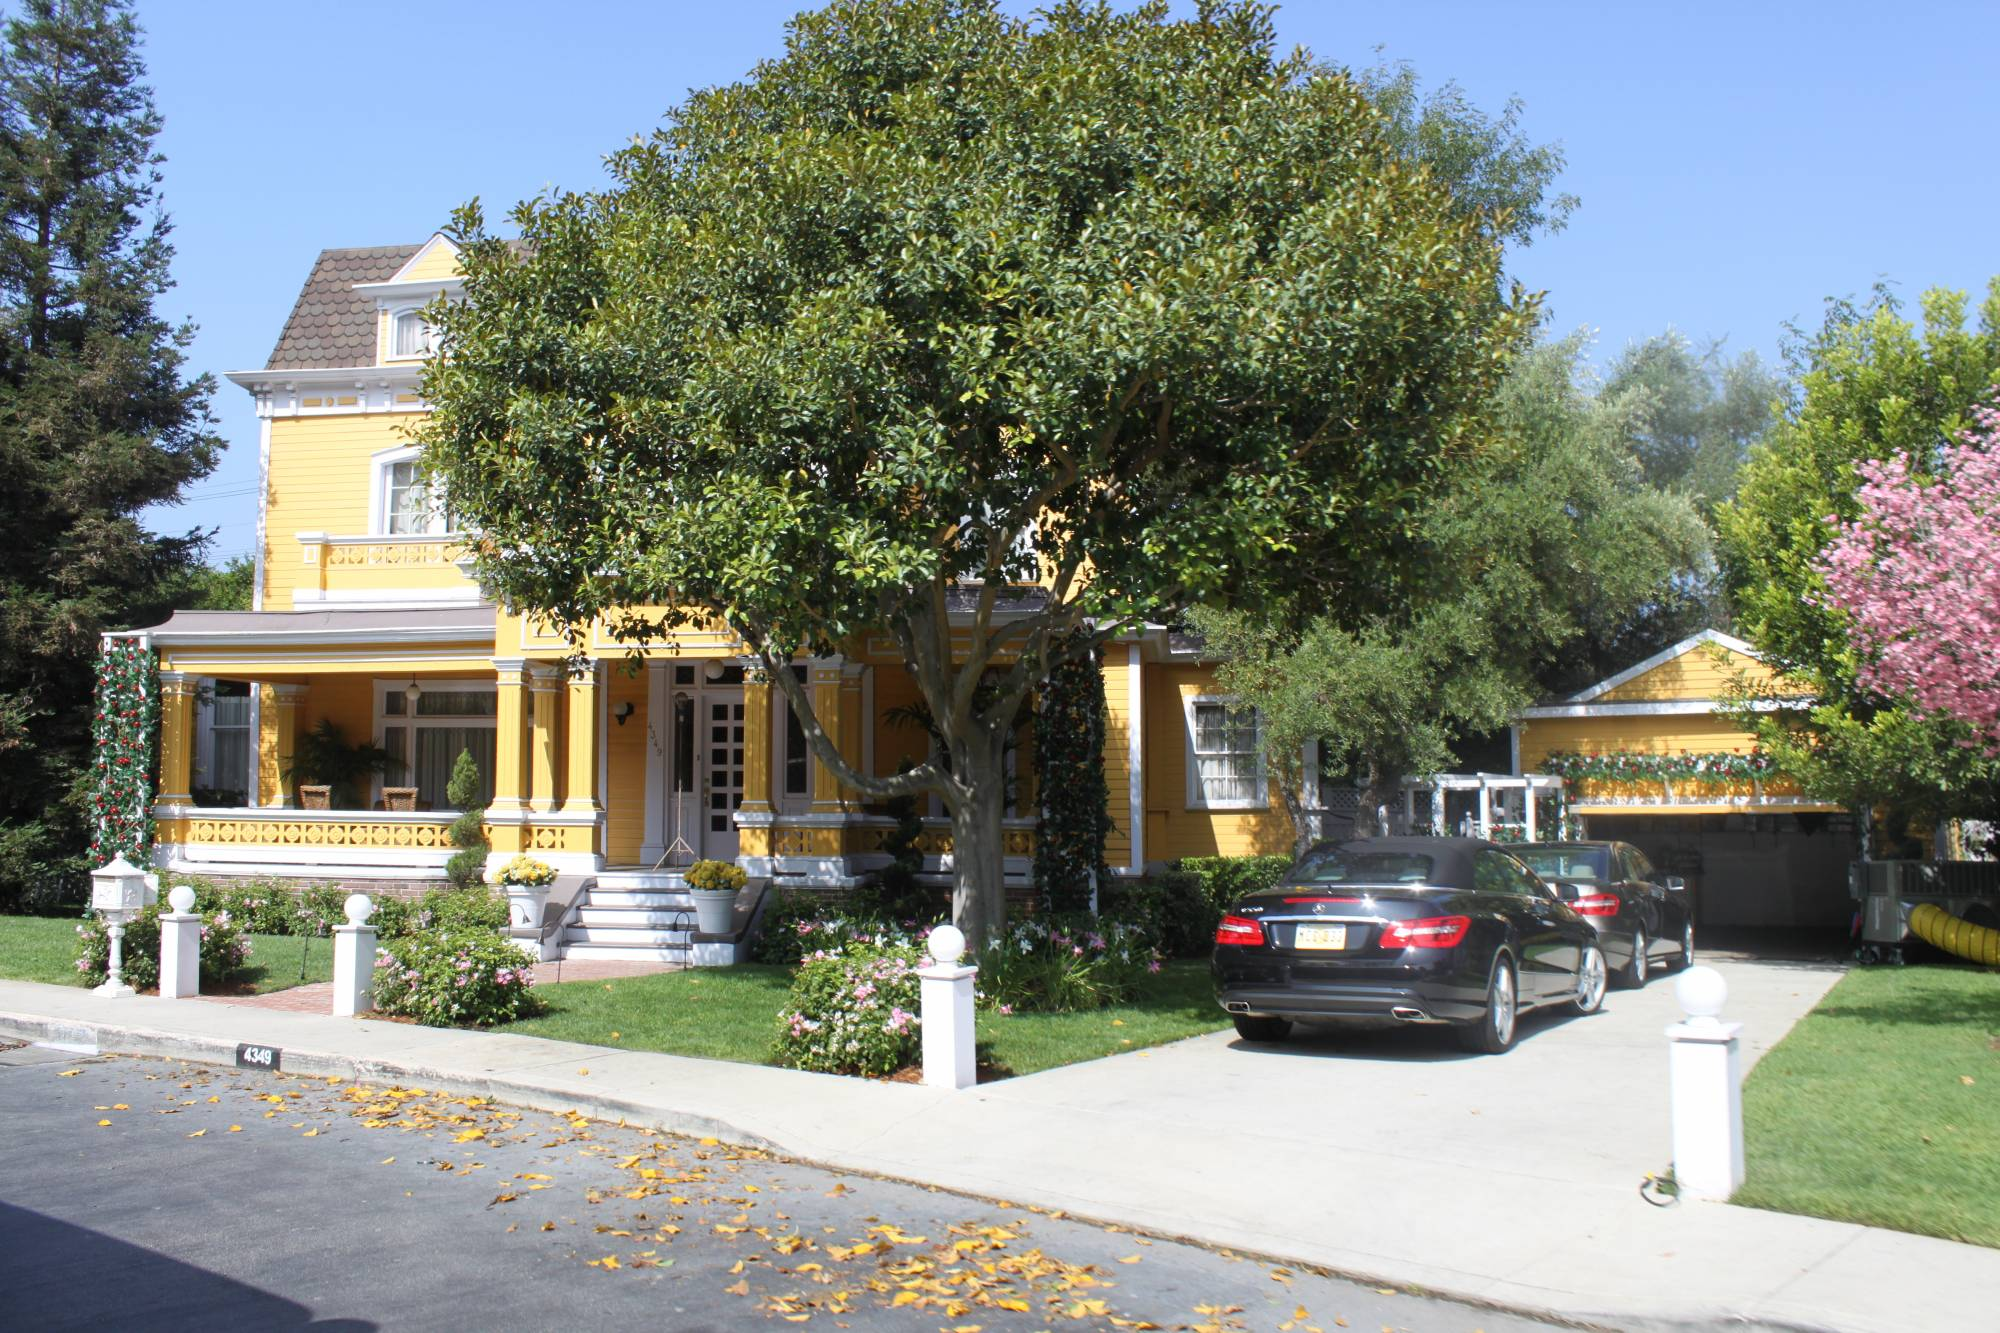 Universal Studios Hollywood Studio Tour - Wisteria Lane